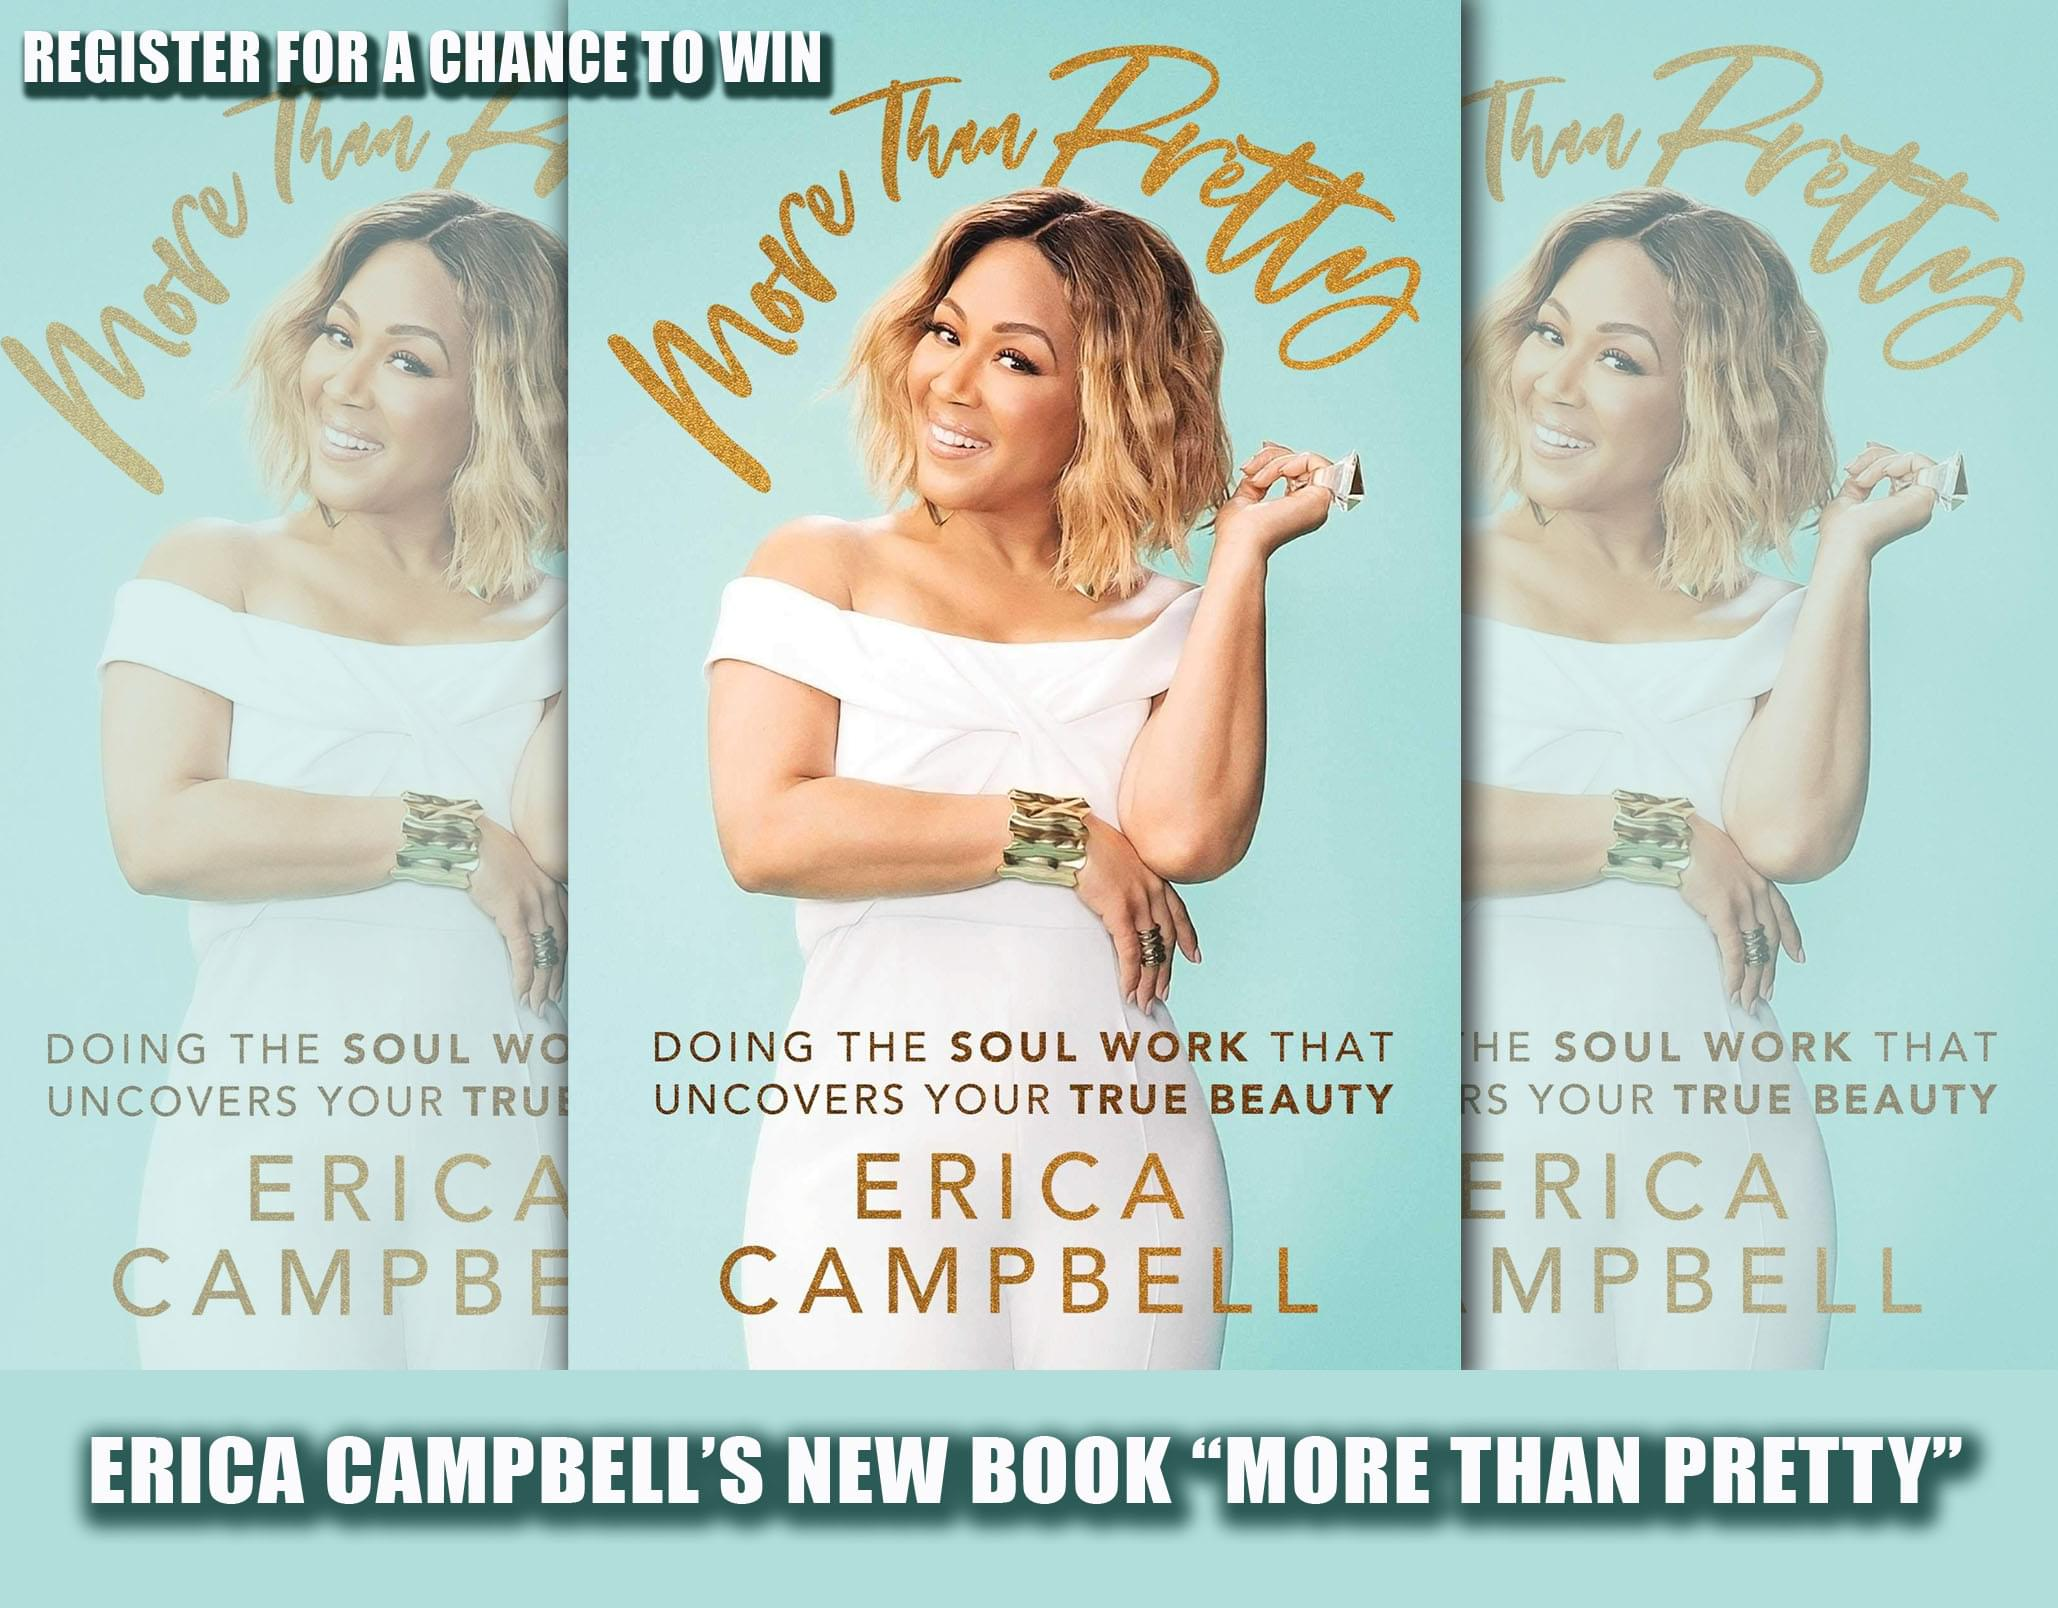 Register to Win Erica Campbell's New Book